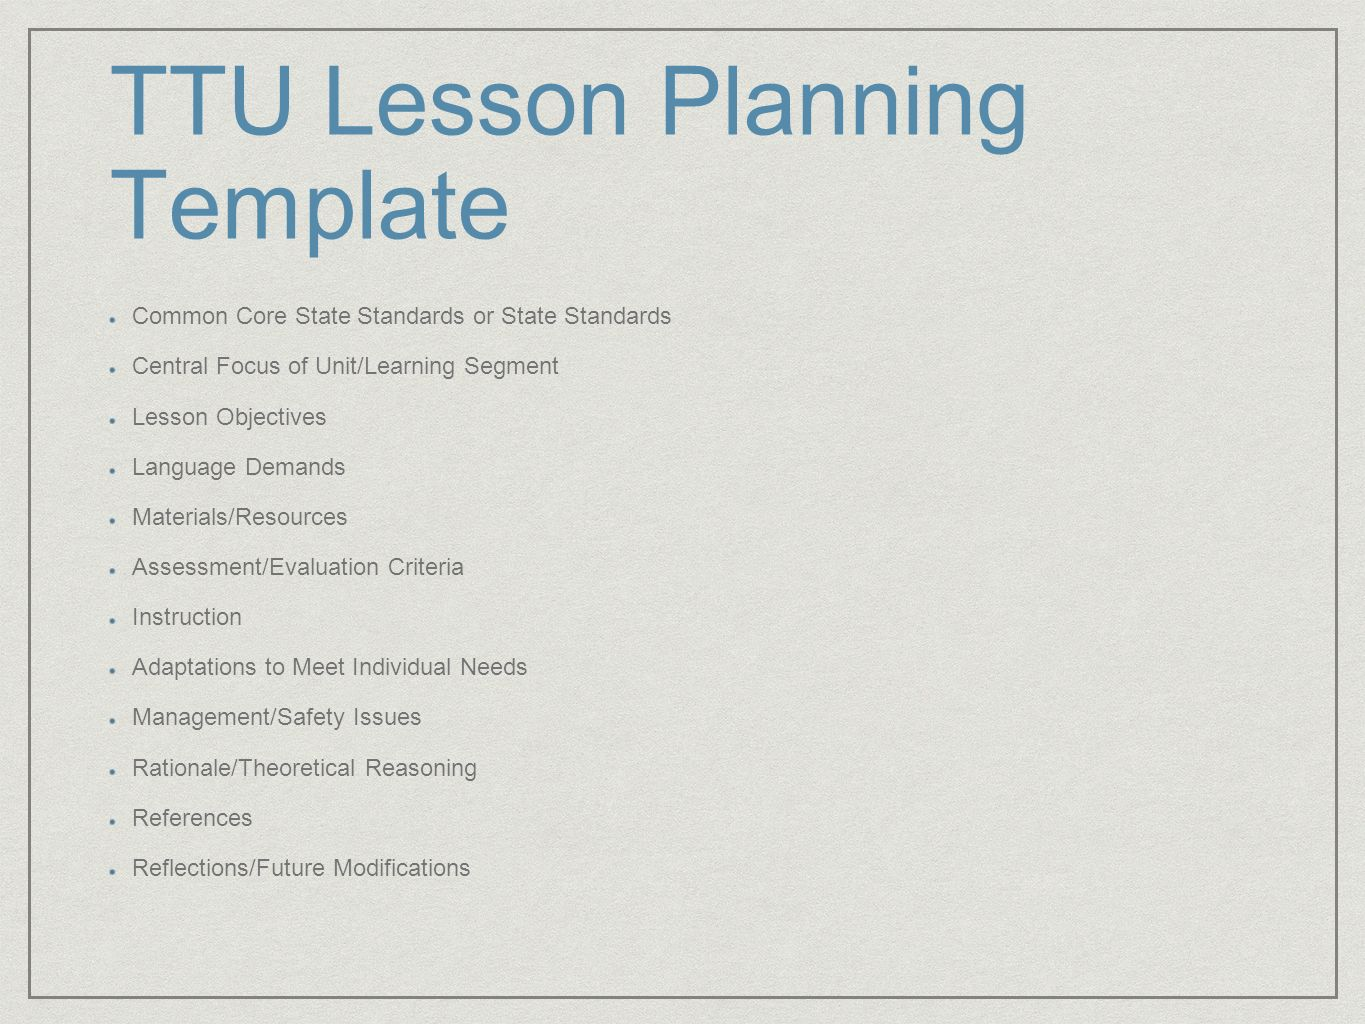 Formal lesson planning with edtpa and team integration dr leslie 6 ttu lesson planning template common core state standards pronofoot35fo Images